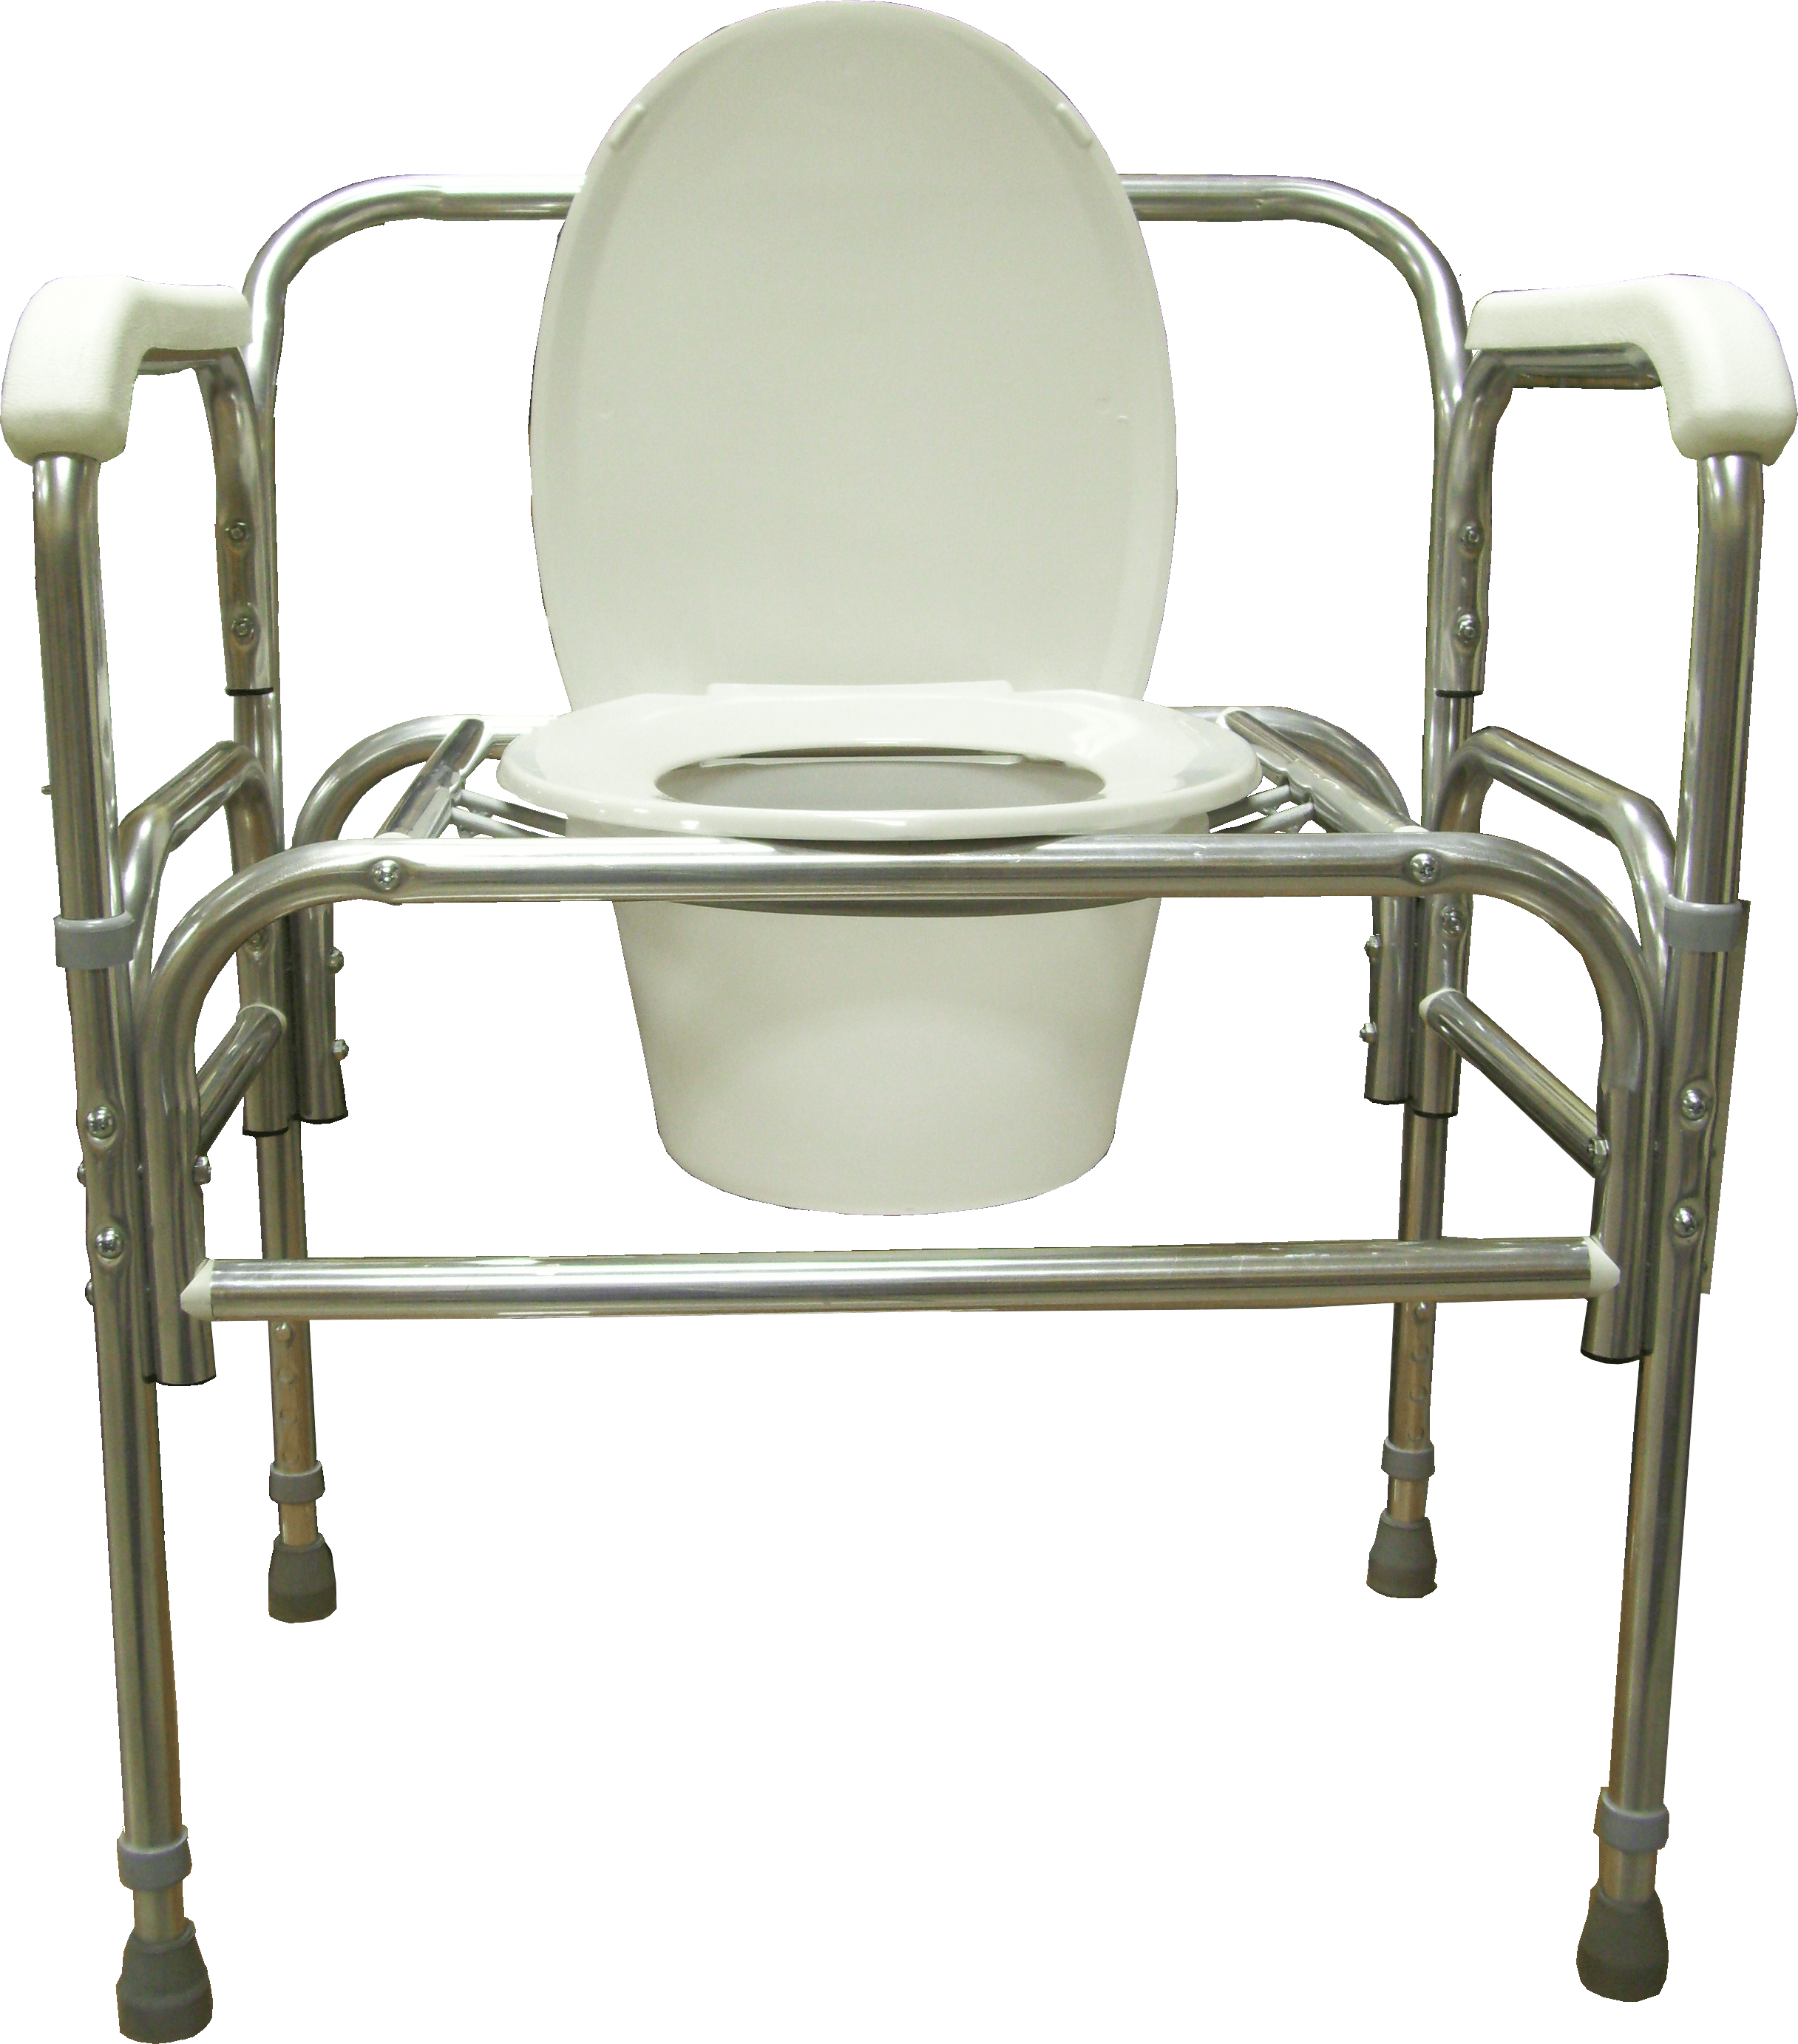 bariatric transport chair 24 seat slim reclining chairs model 724a bedside commodes adjustable height